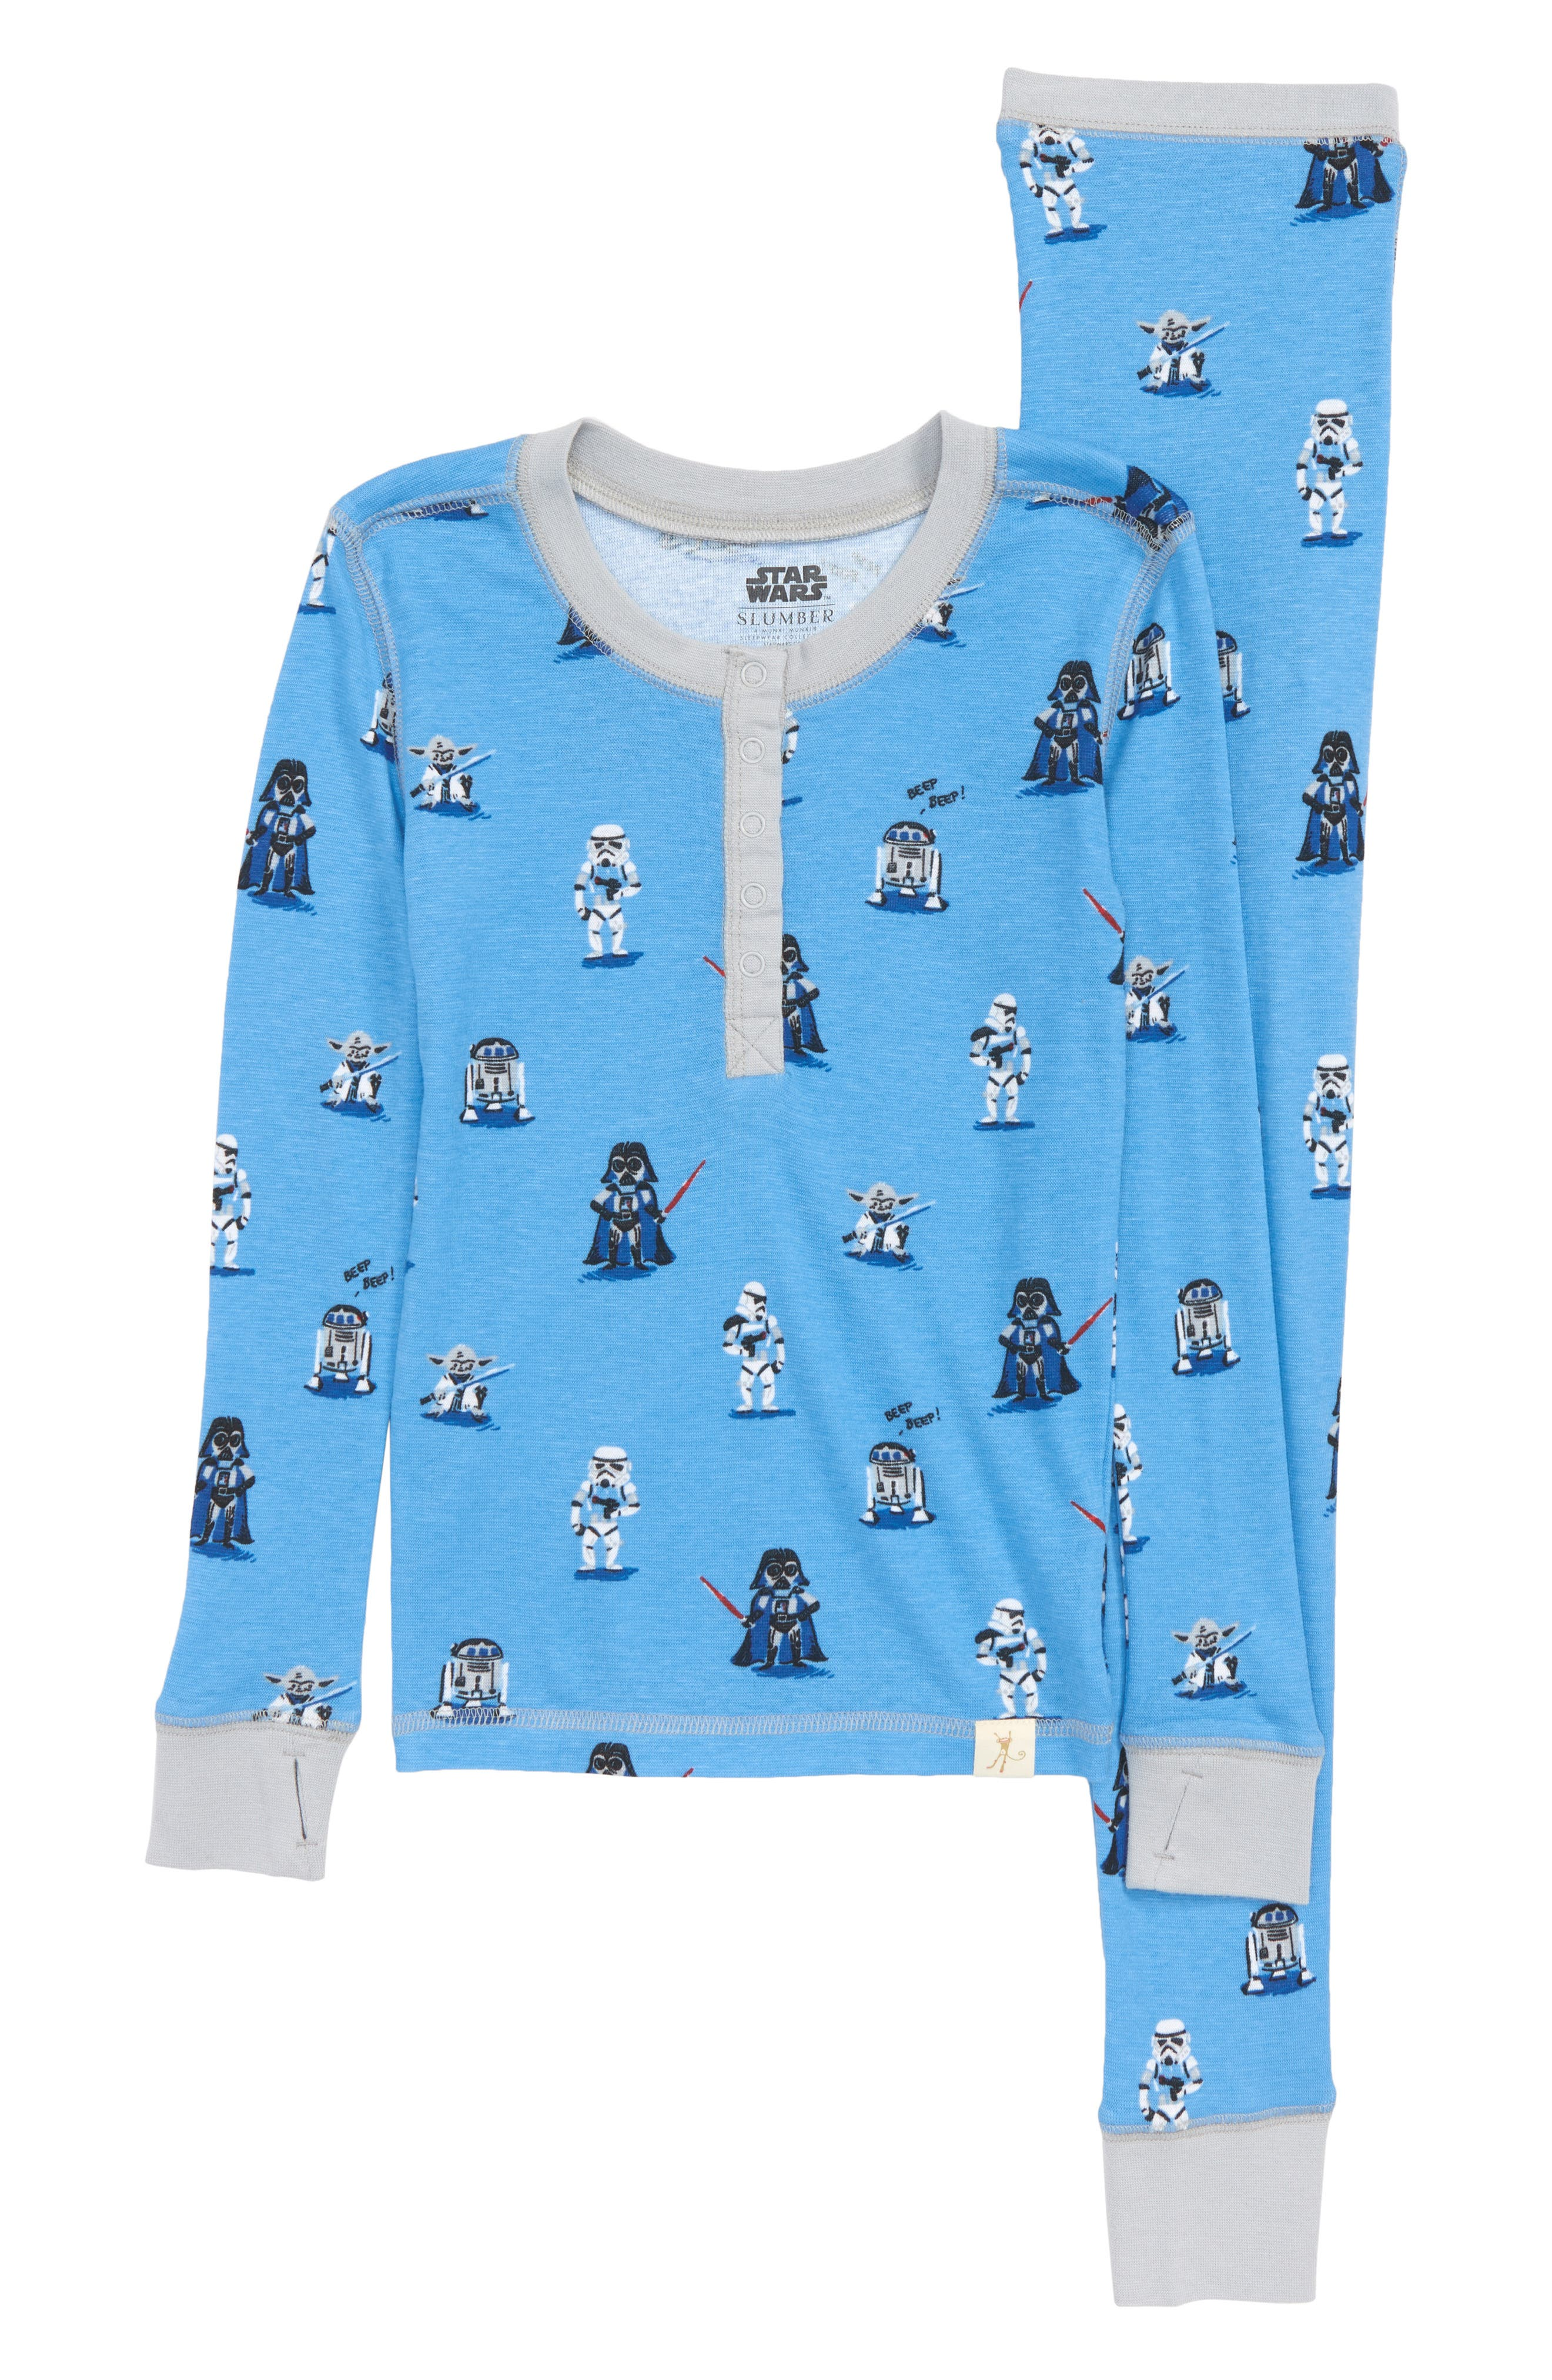 x Star Wars Fitted Two-Piece Pajamas,                         Main,                         color, 400